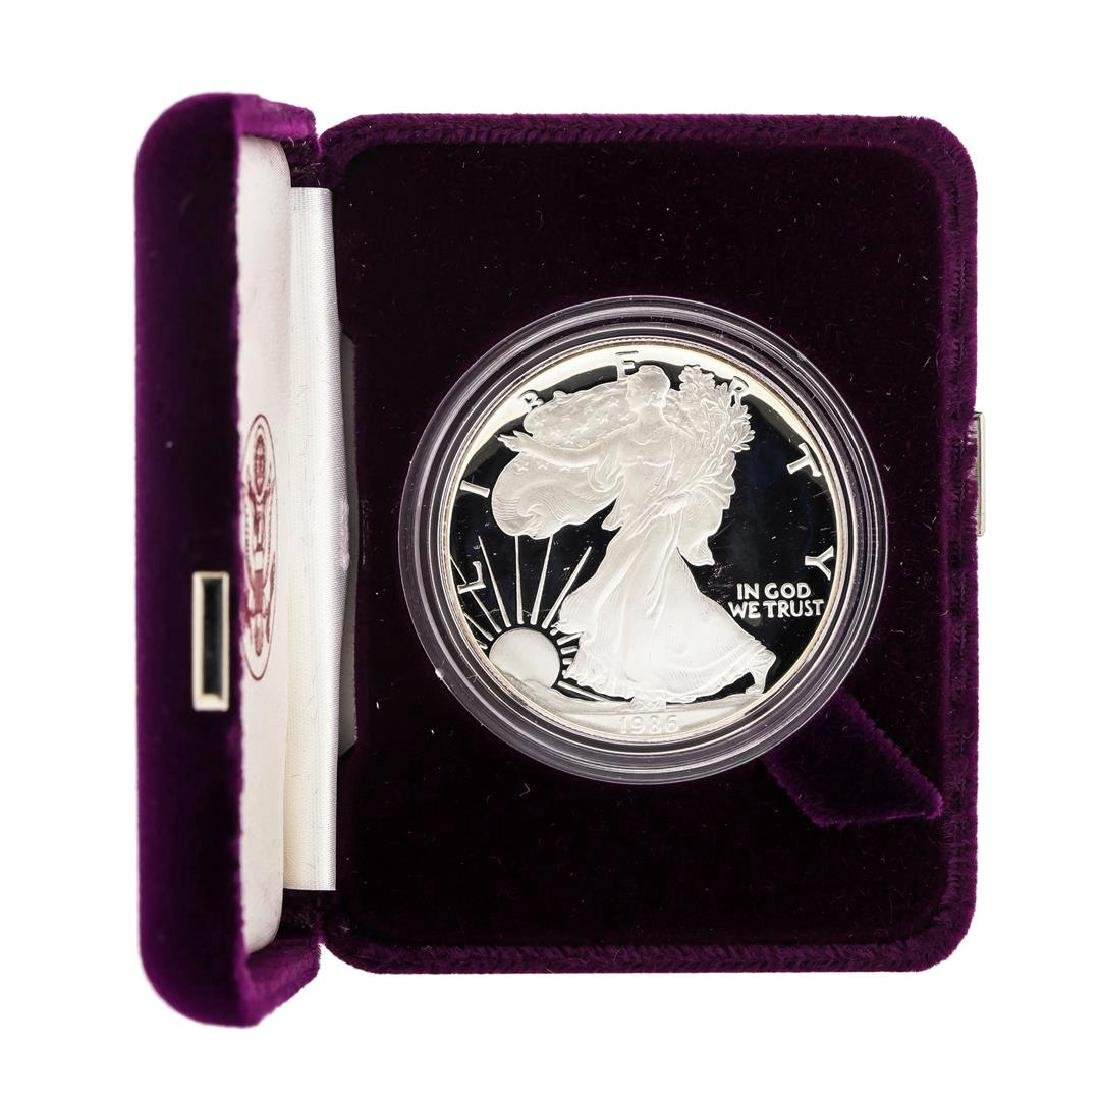 1986 1oz American Silver Eagle Proof Coin with Box